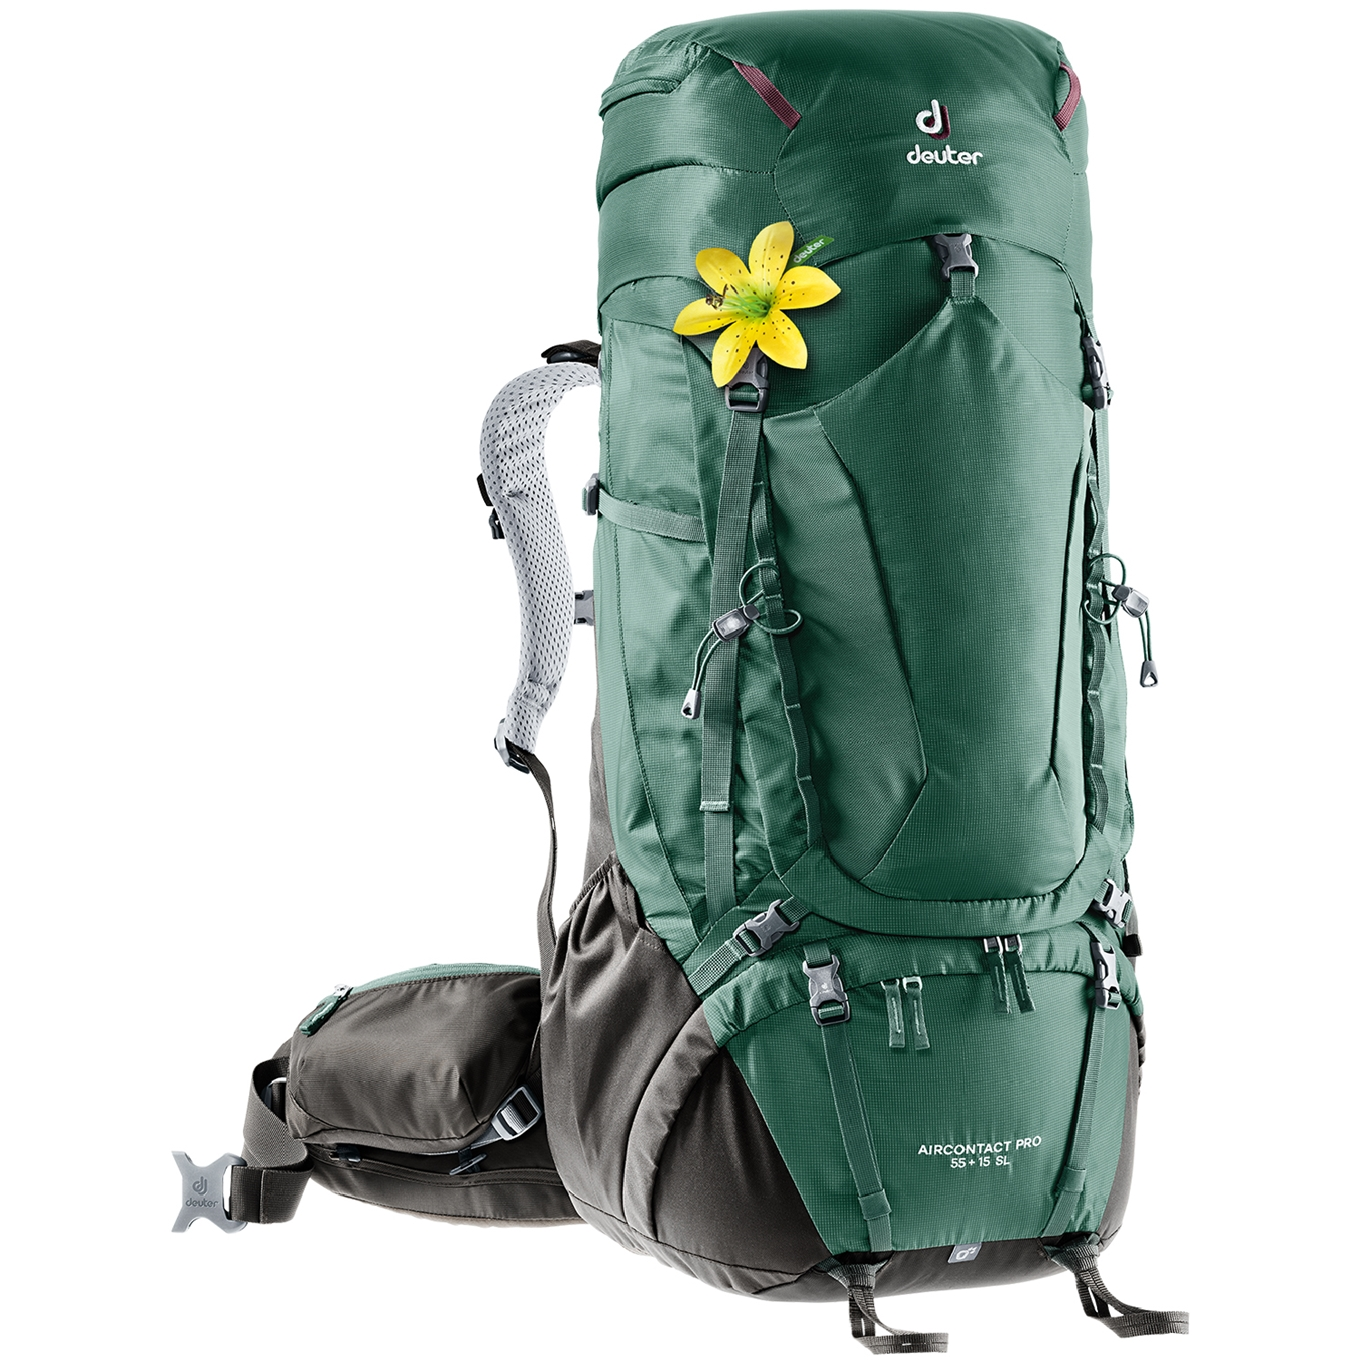 Deuter Aircontact Pro 55 + 15 SL seagreen/coffee backpack <br/></noscript><img class=